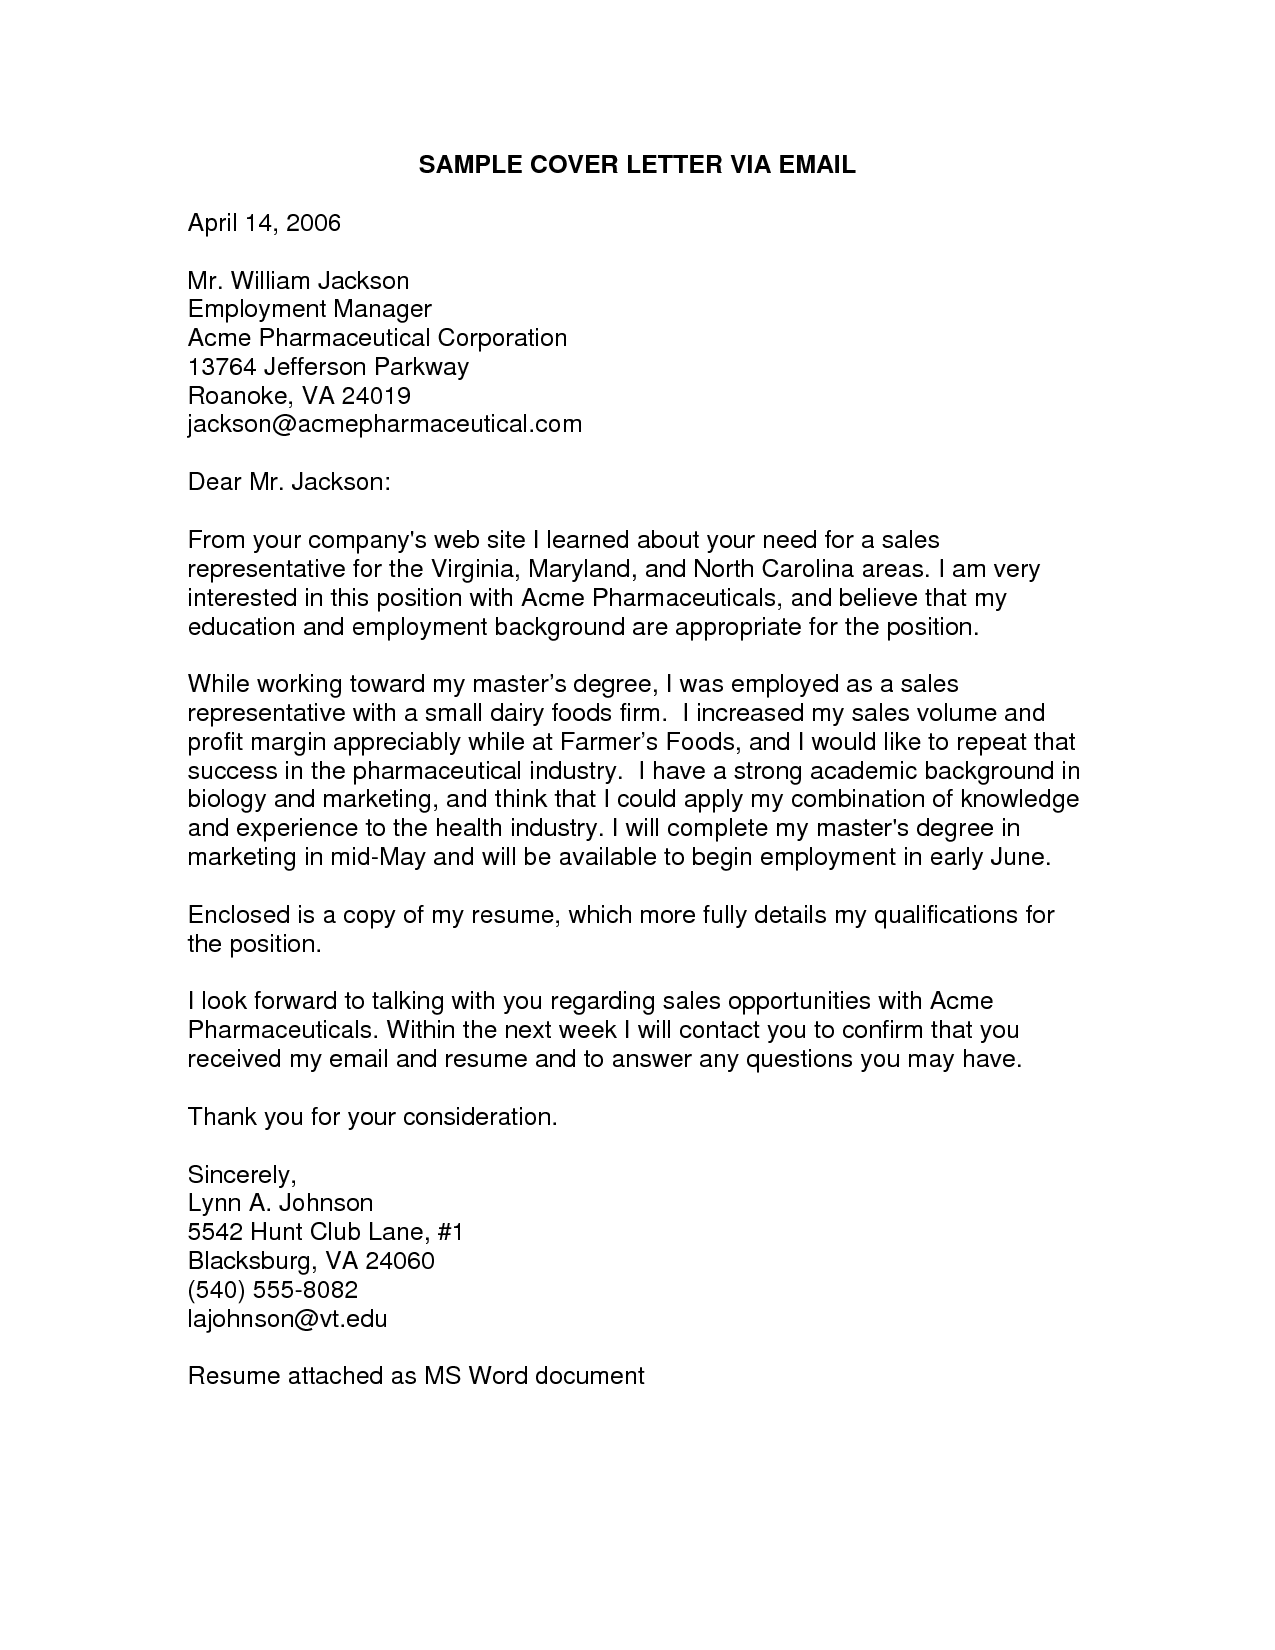 Cover Letter Example Email